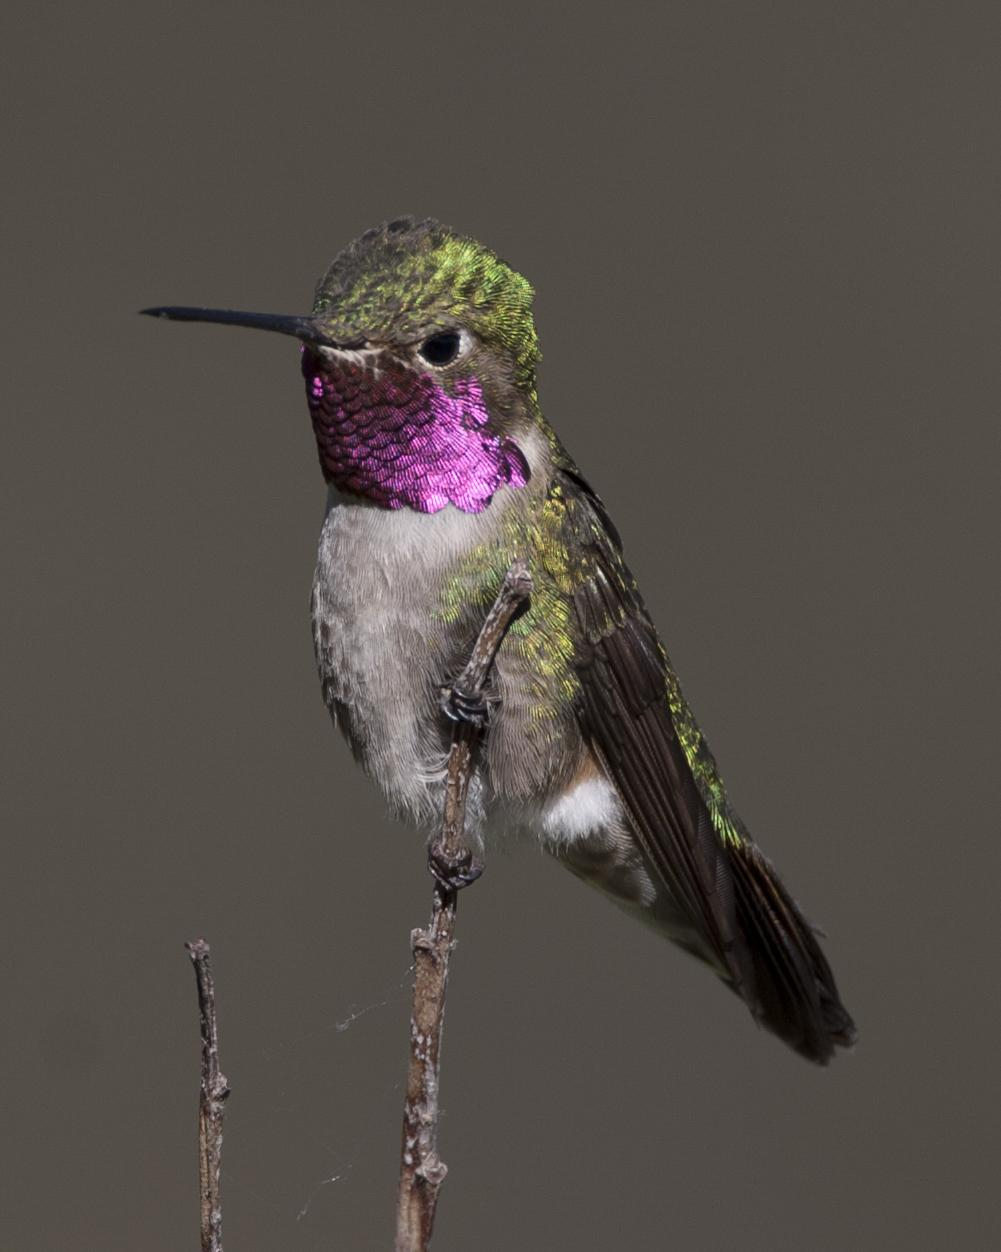 Broad-tailed Hummingbird Photo by Jeff Moore